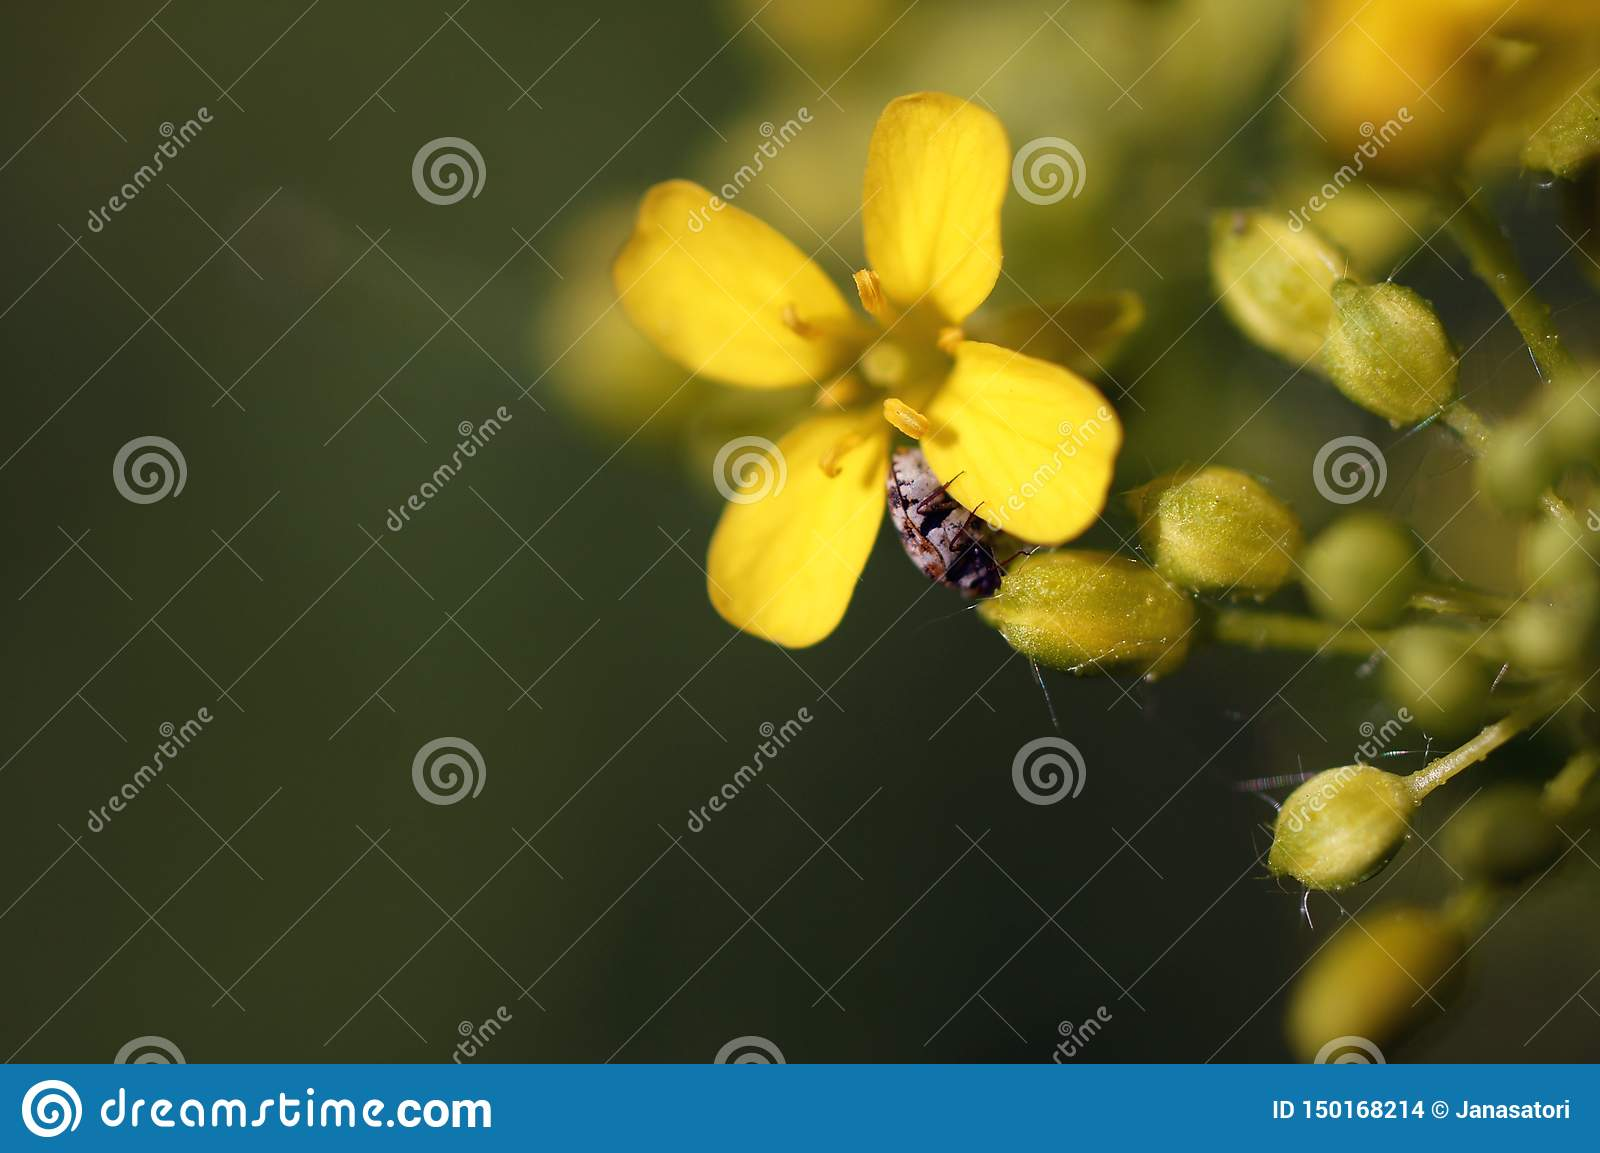 A tiny beetle crawling on a little yellow flower.